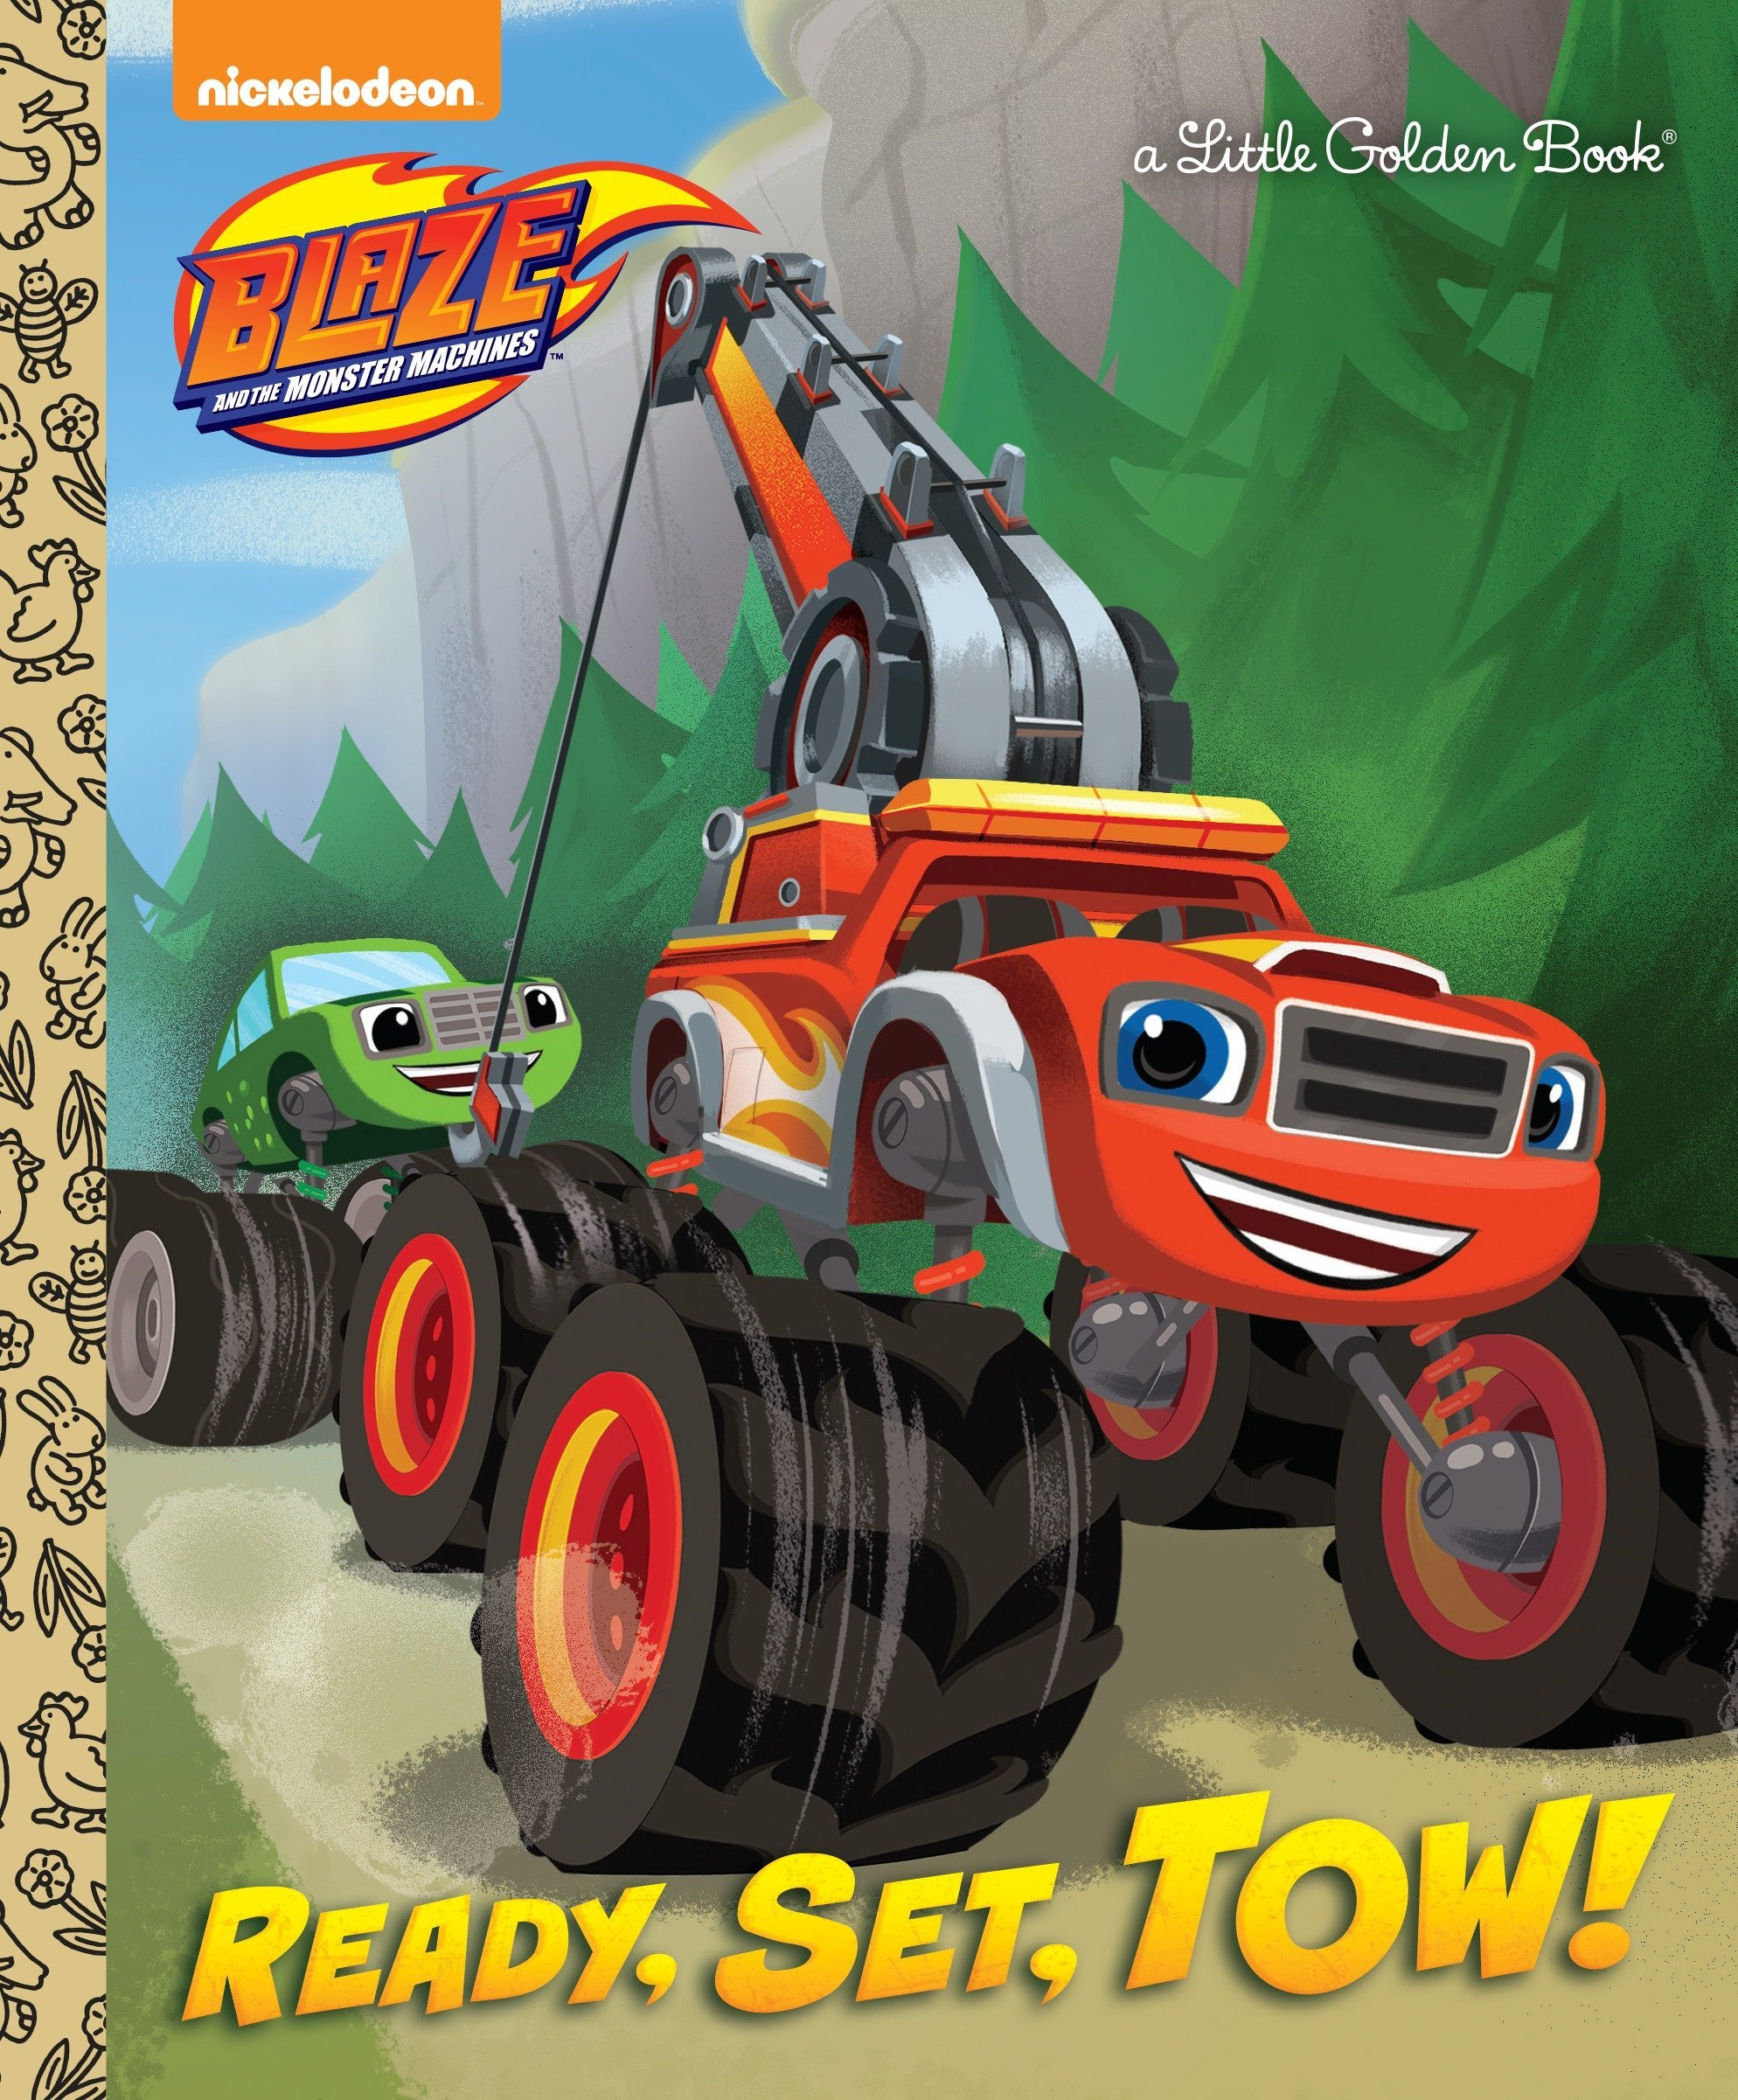 Ready, Set, Tow! (Blaze And The Monster Machines) (Little Golden Book)